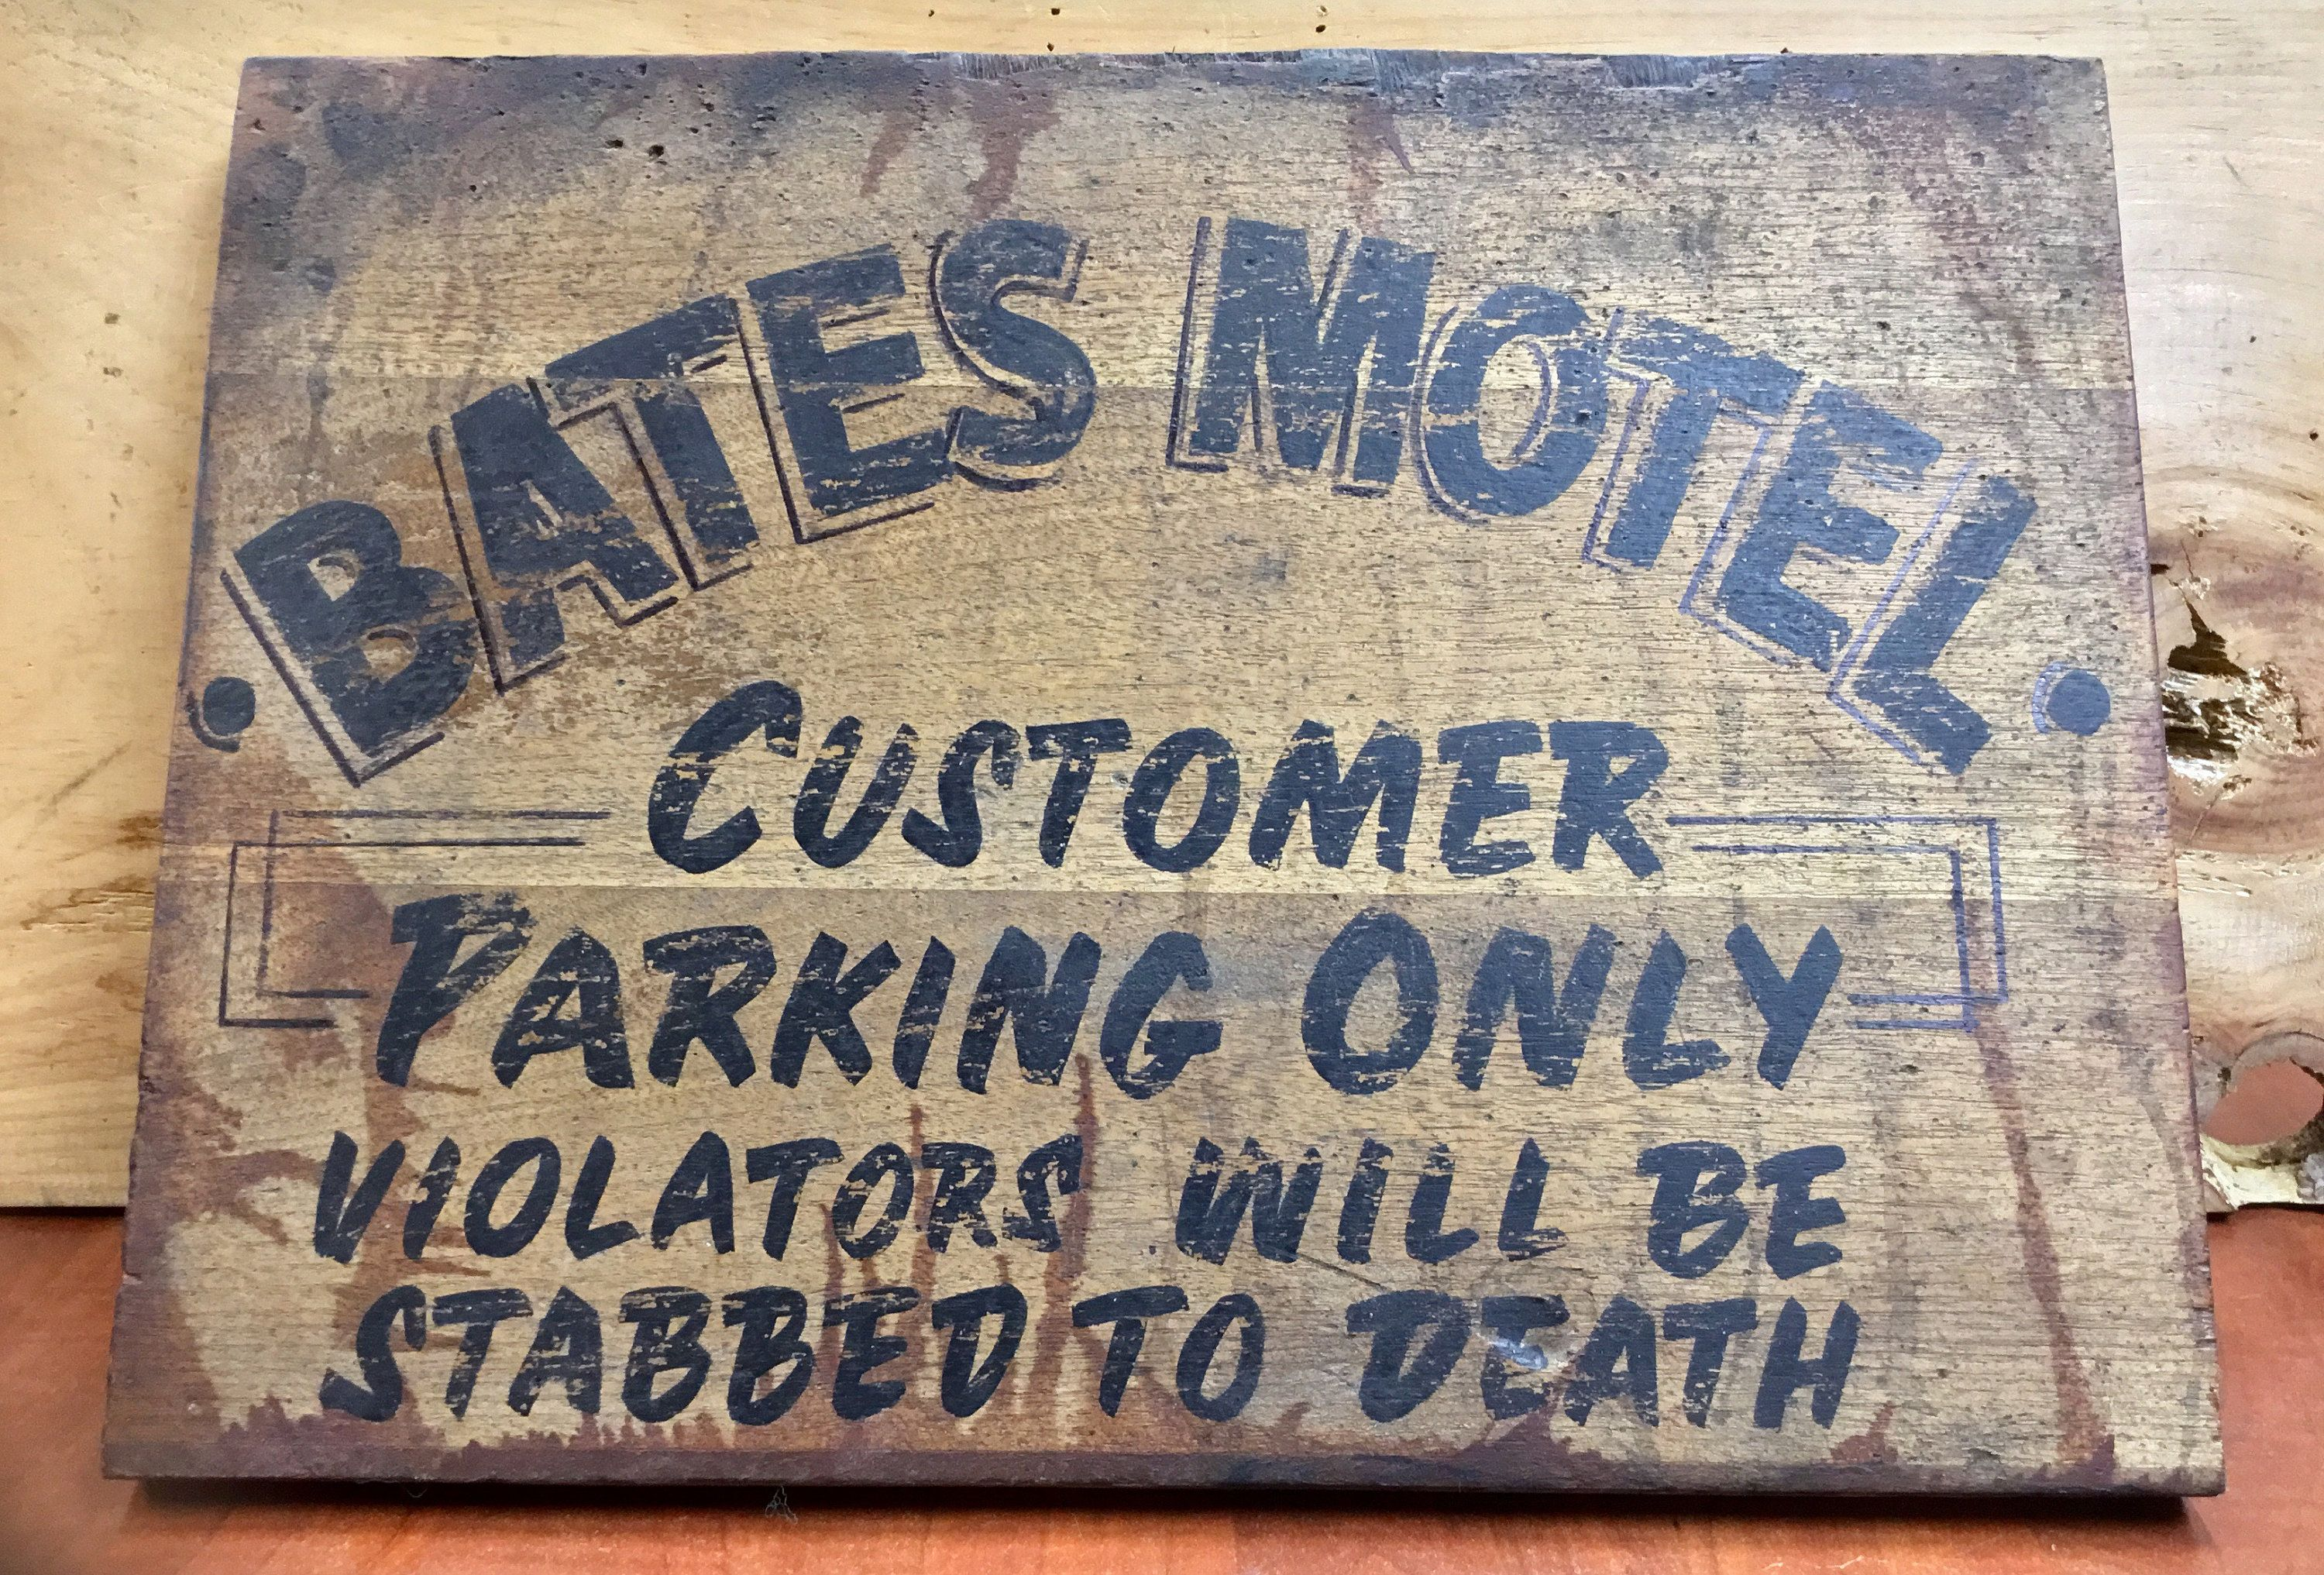 Bates Motel Aged Hand Lettered Sign Parking signs, Hand